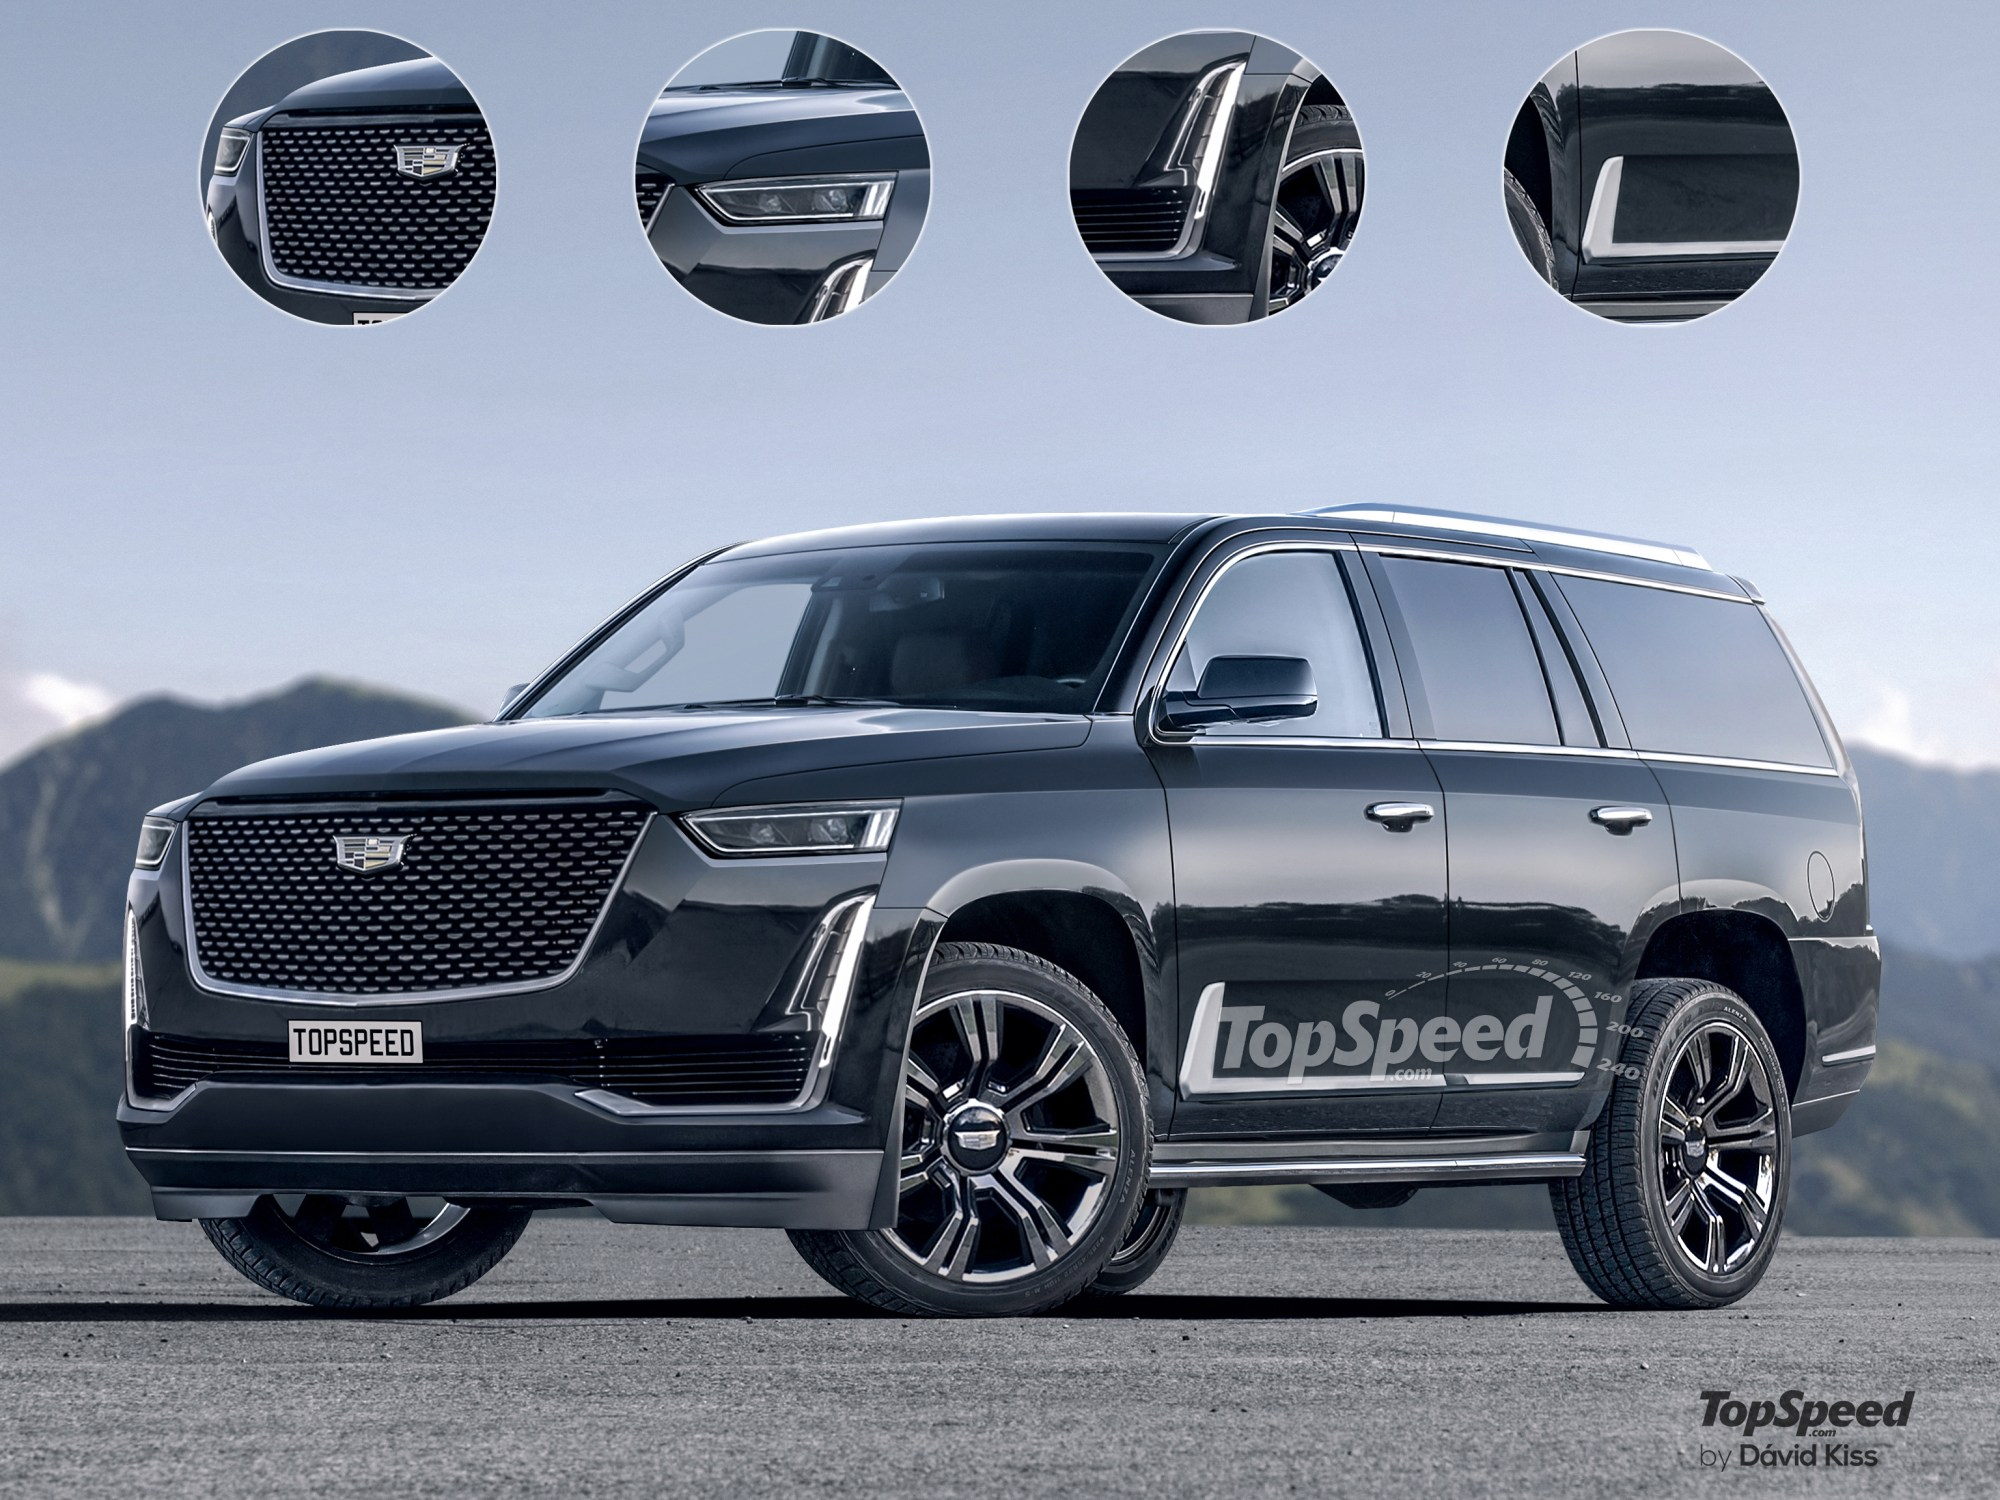 hight resolution of 2020 cadillac escalade top speed